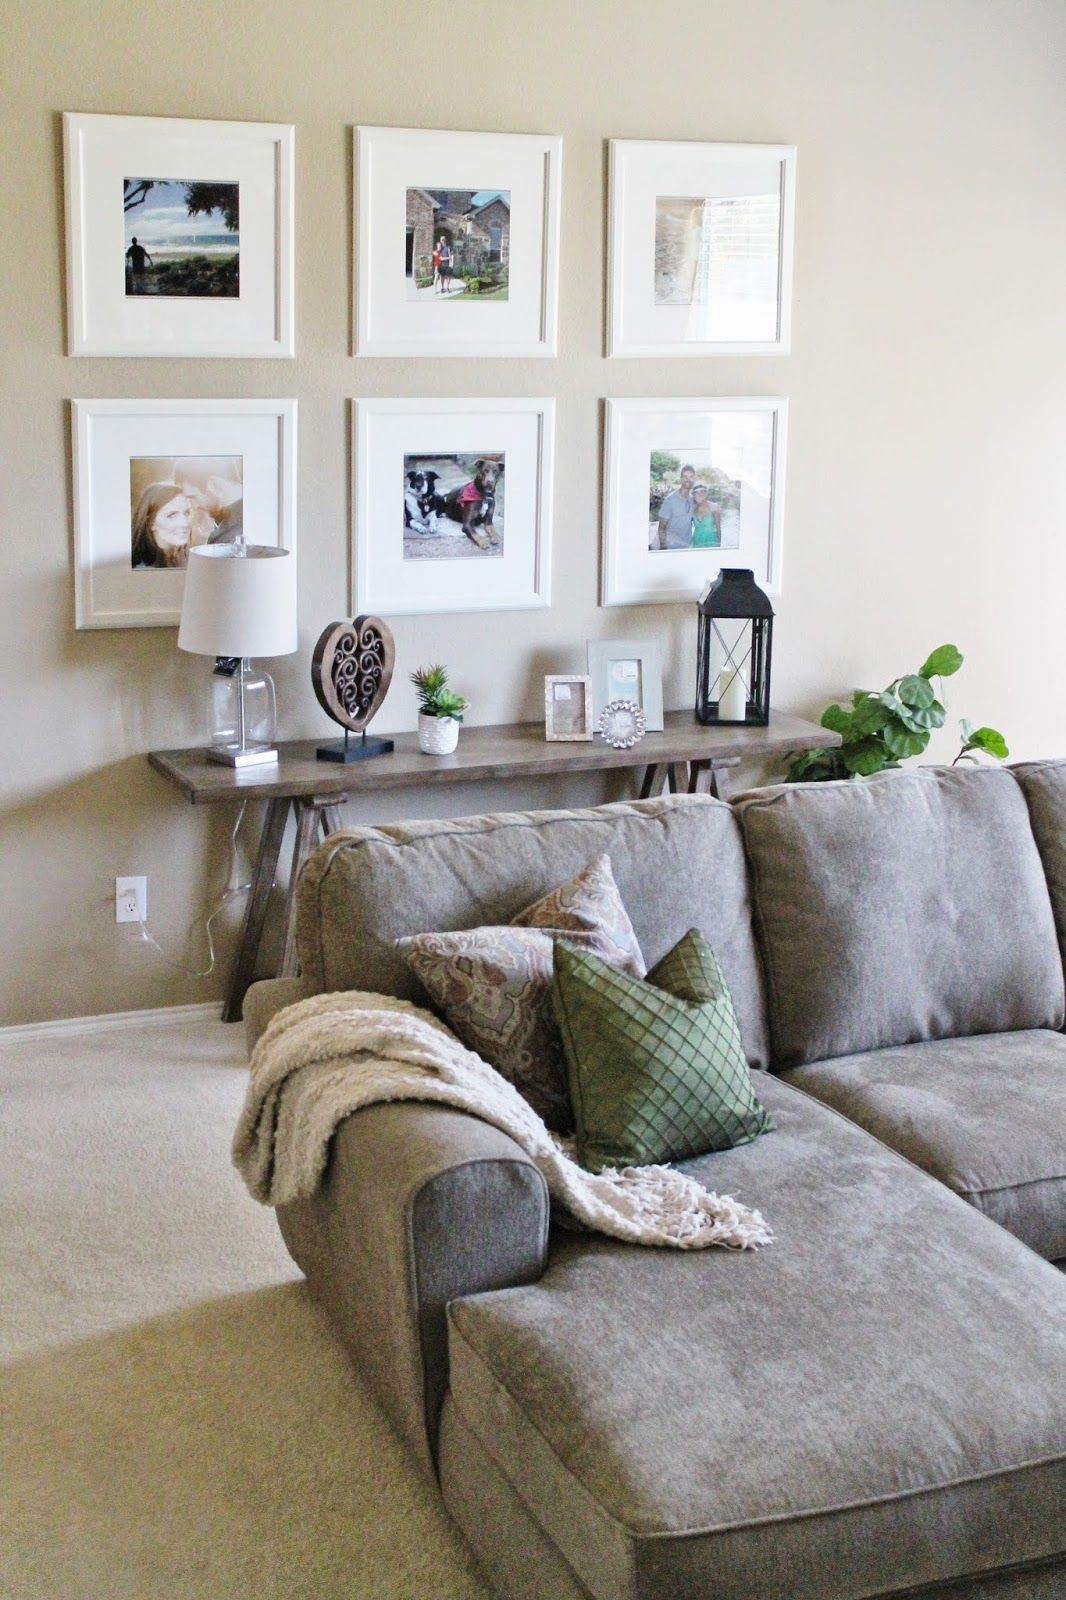 Designs For Sofas For The Living Room: Living Room Decor // Ikea Picture Frame Gallery Wall